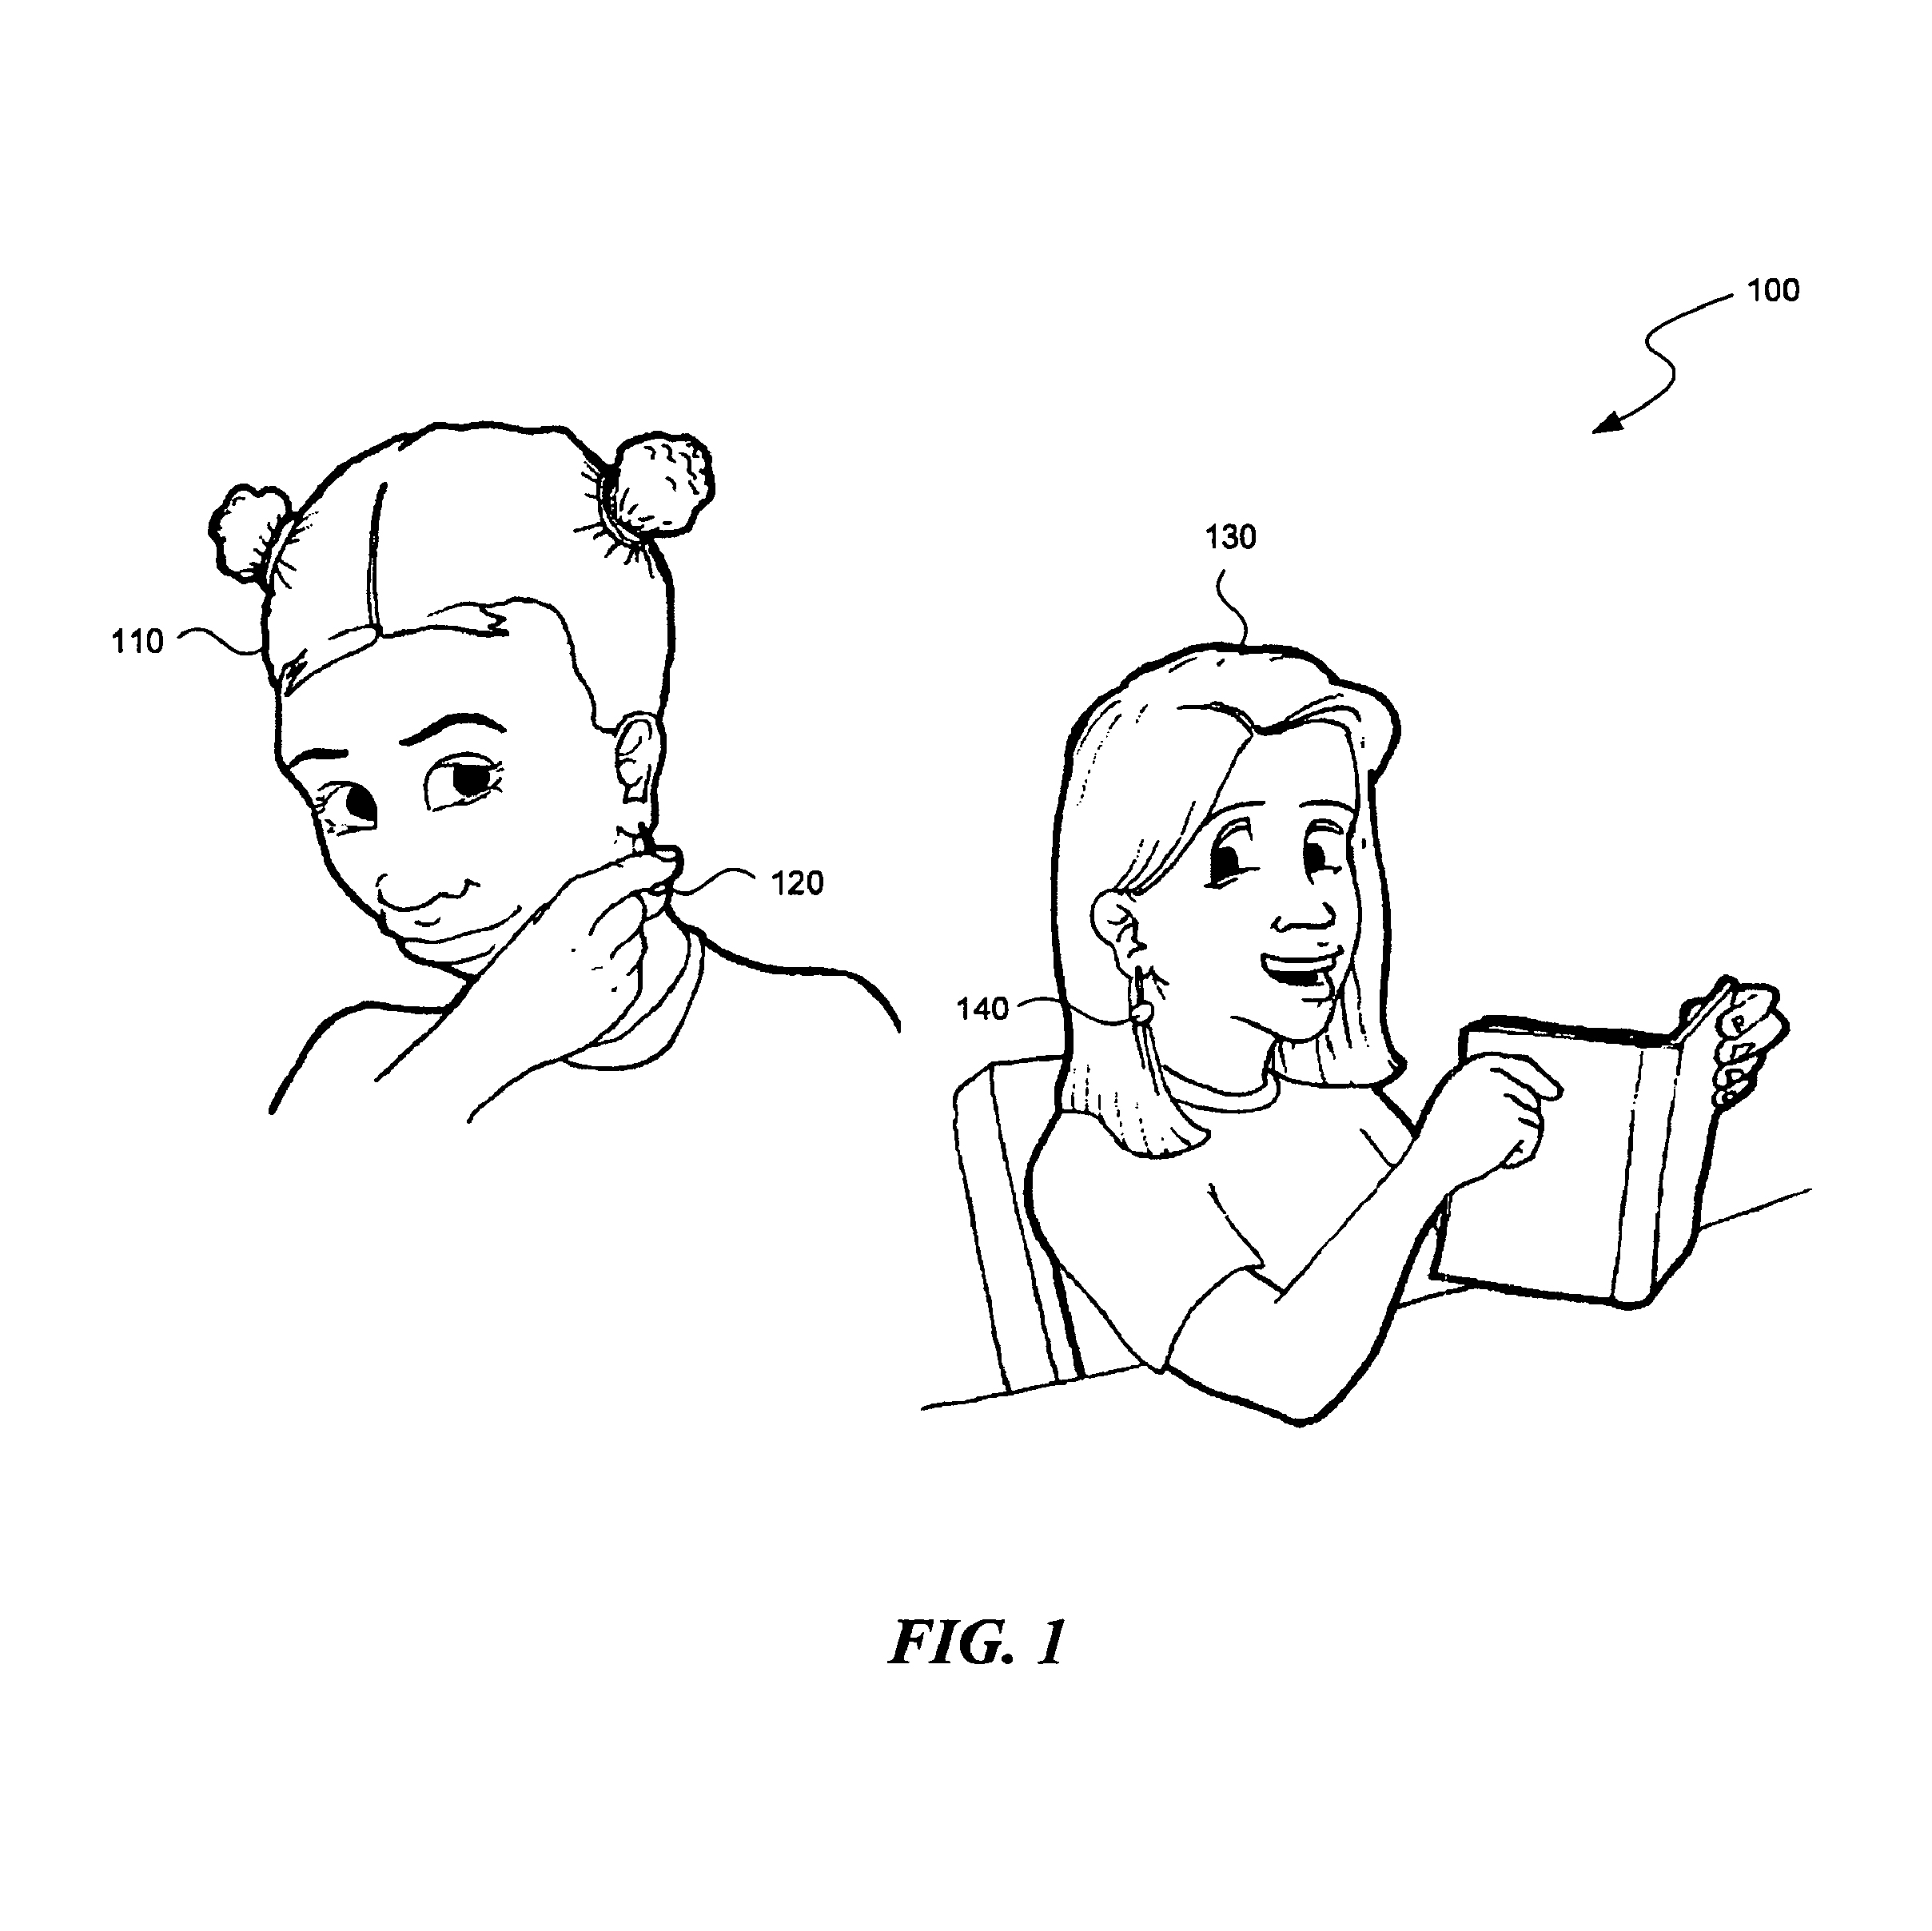 Communication between devices using tactile or visual inputs, such as devices associated with mobile devices